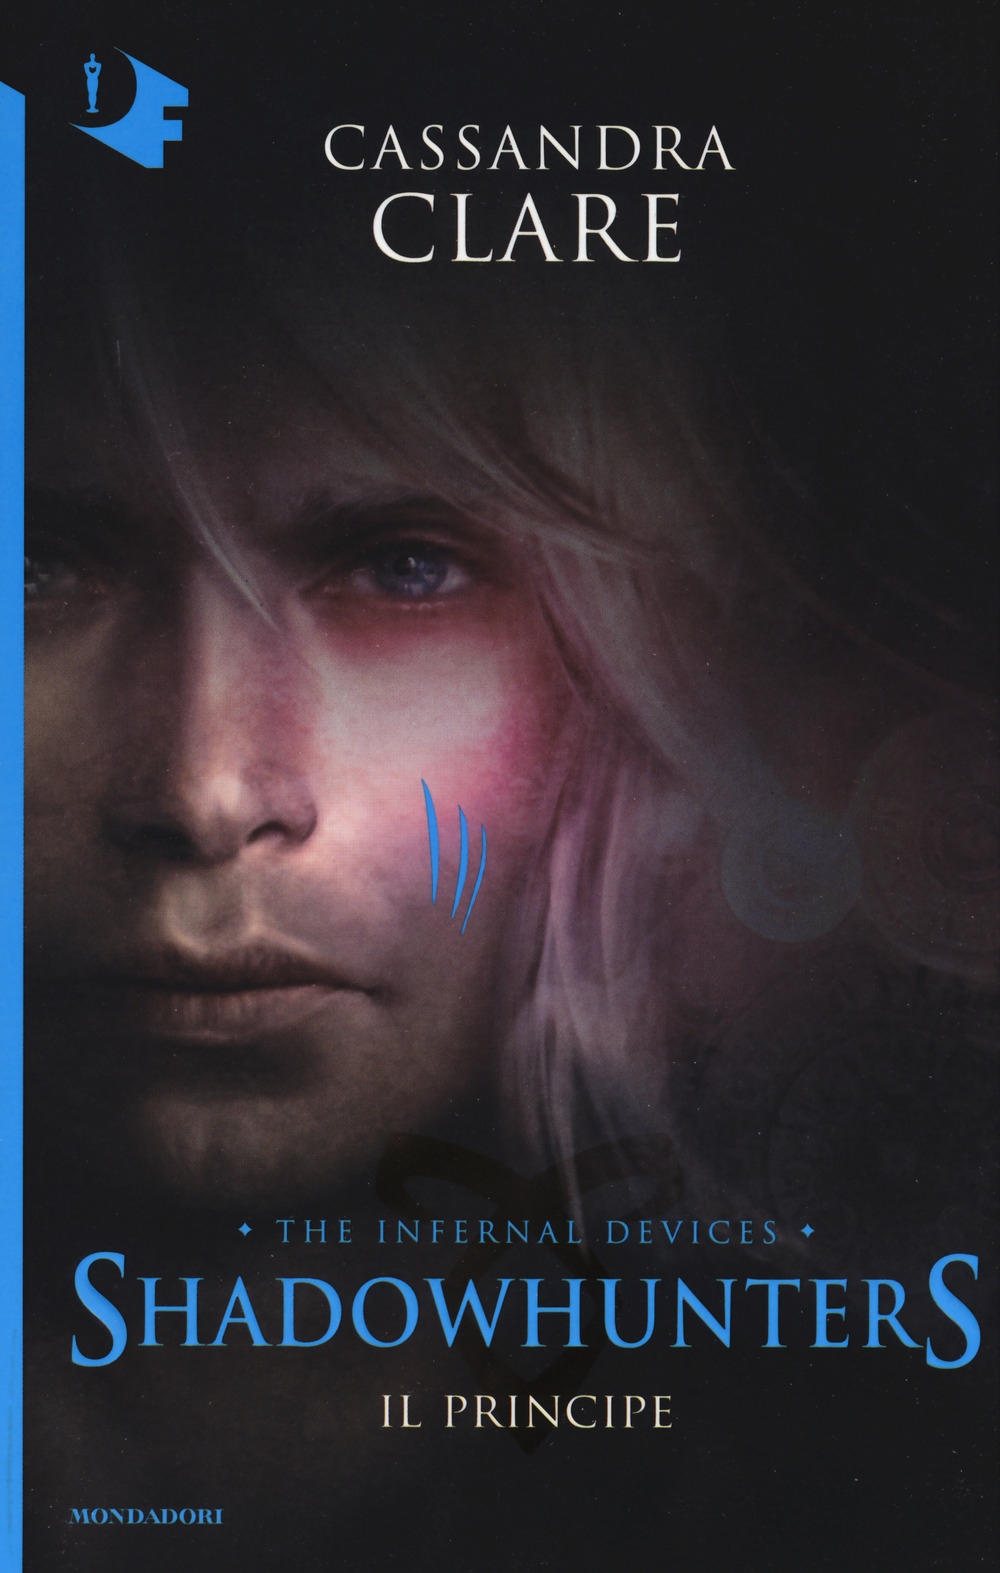 PRINCIPE. SHADOWHUNTERS. THE INFERNAL DEVICES (IL) - 9788804666424